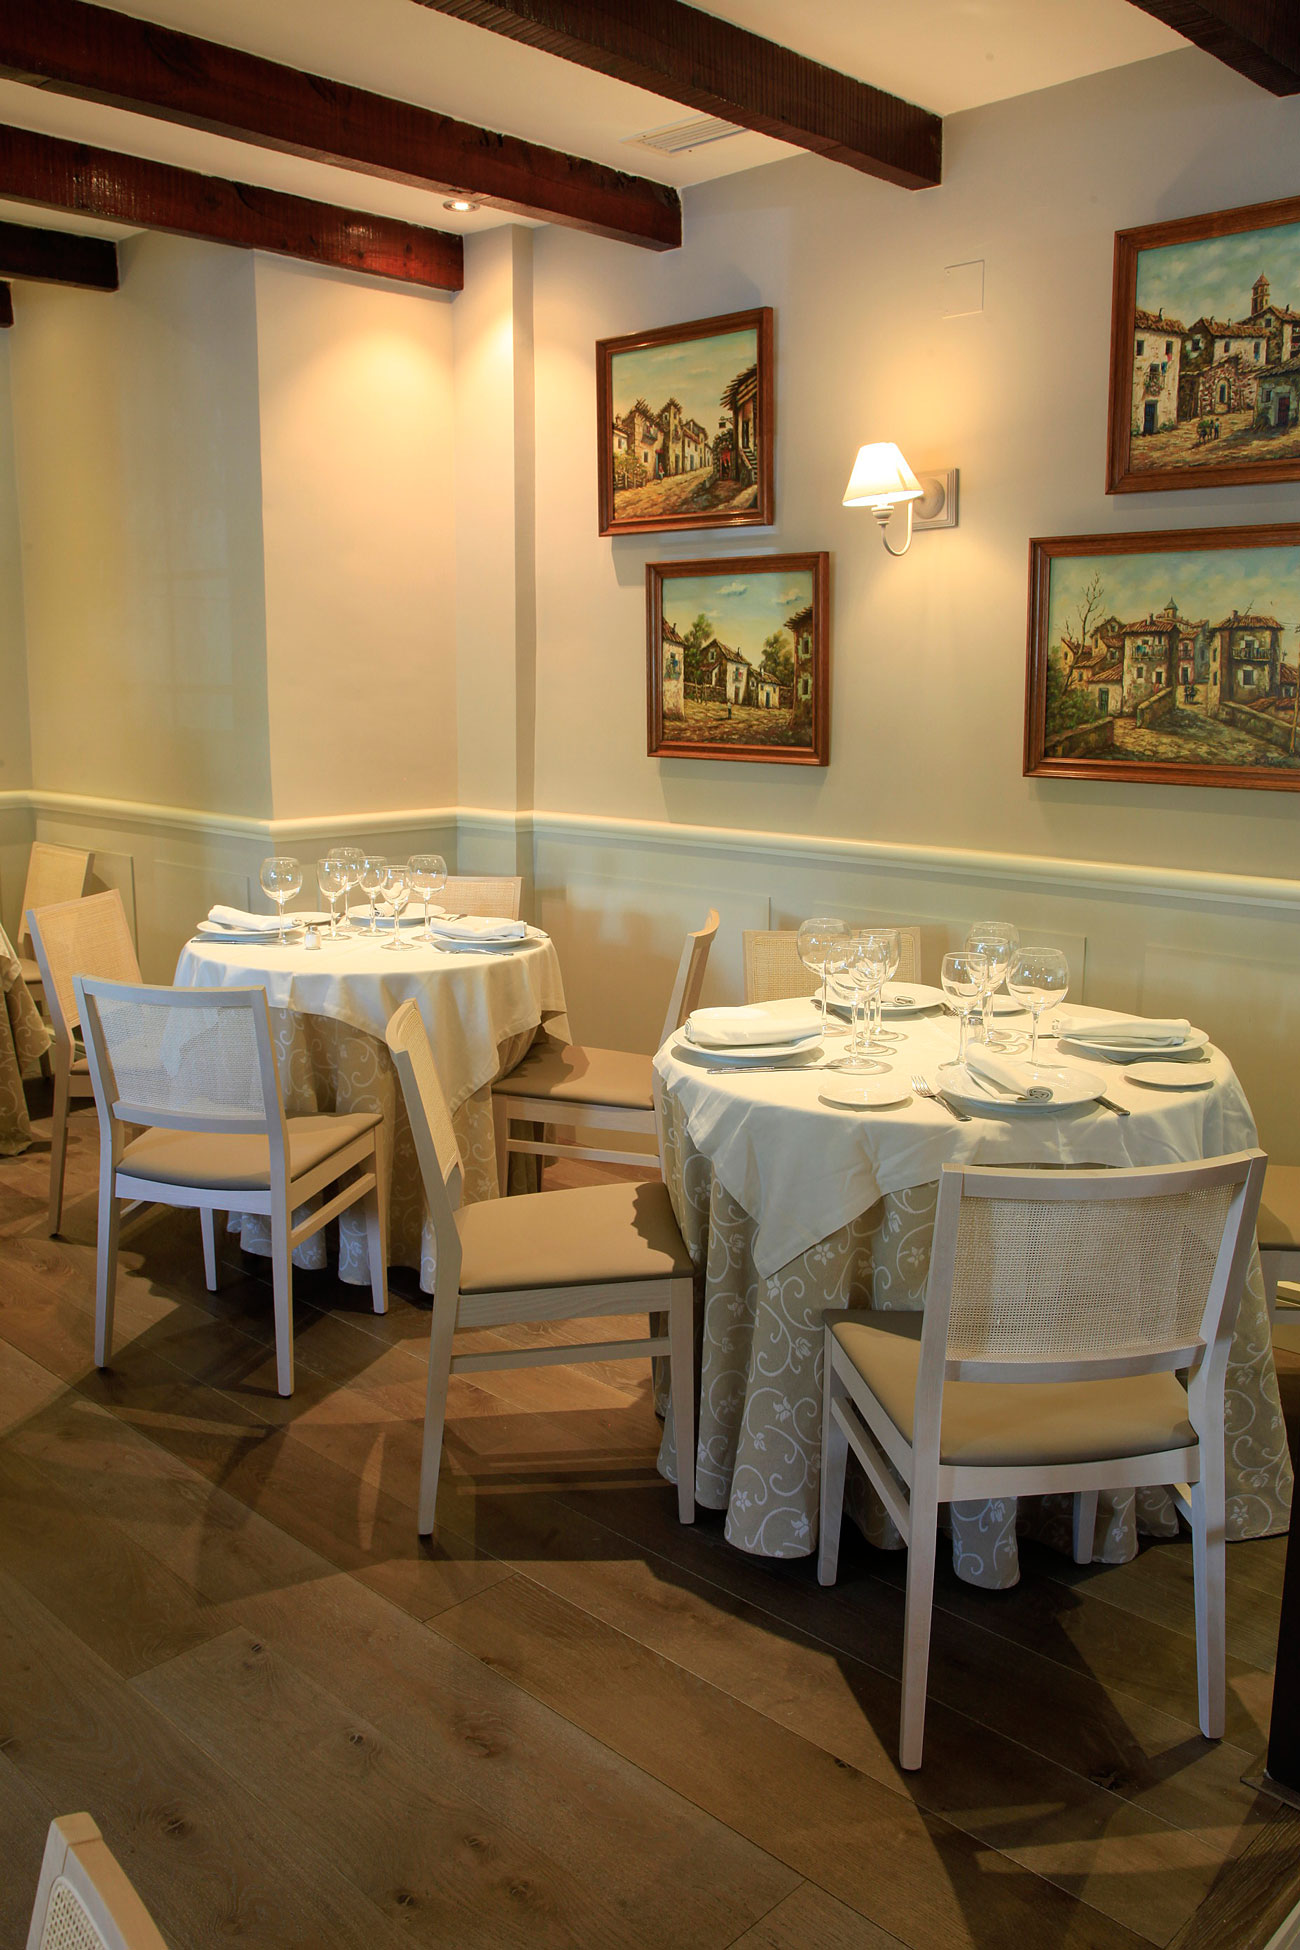 FURNITURE-BY-VERGES-RESTAURANT-GALLEGO-IN-MADRD